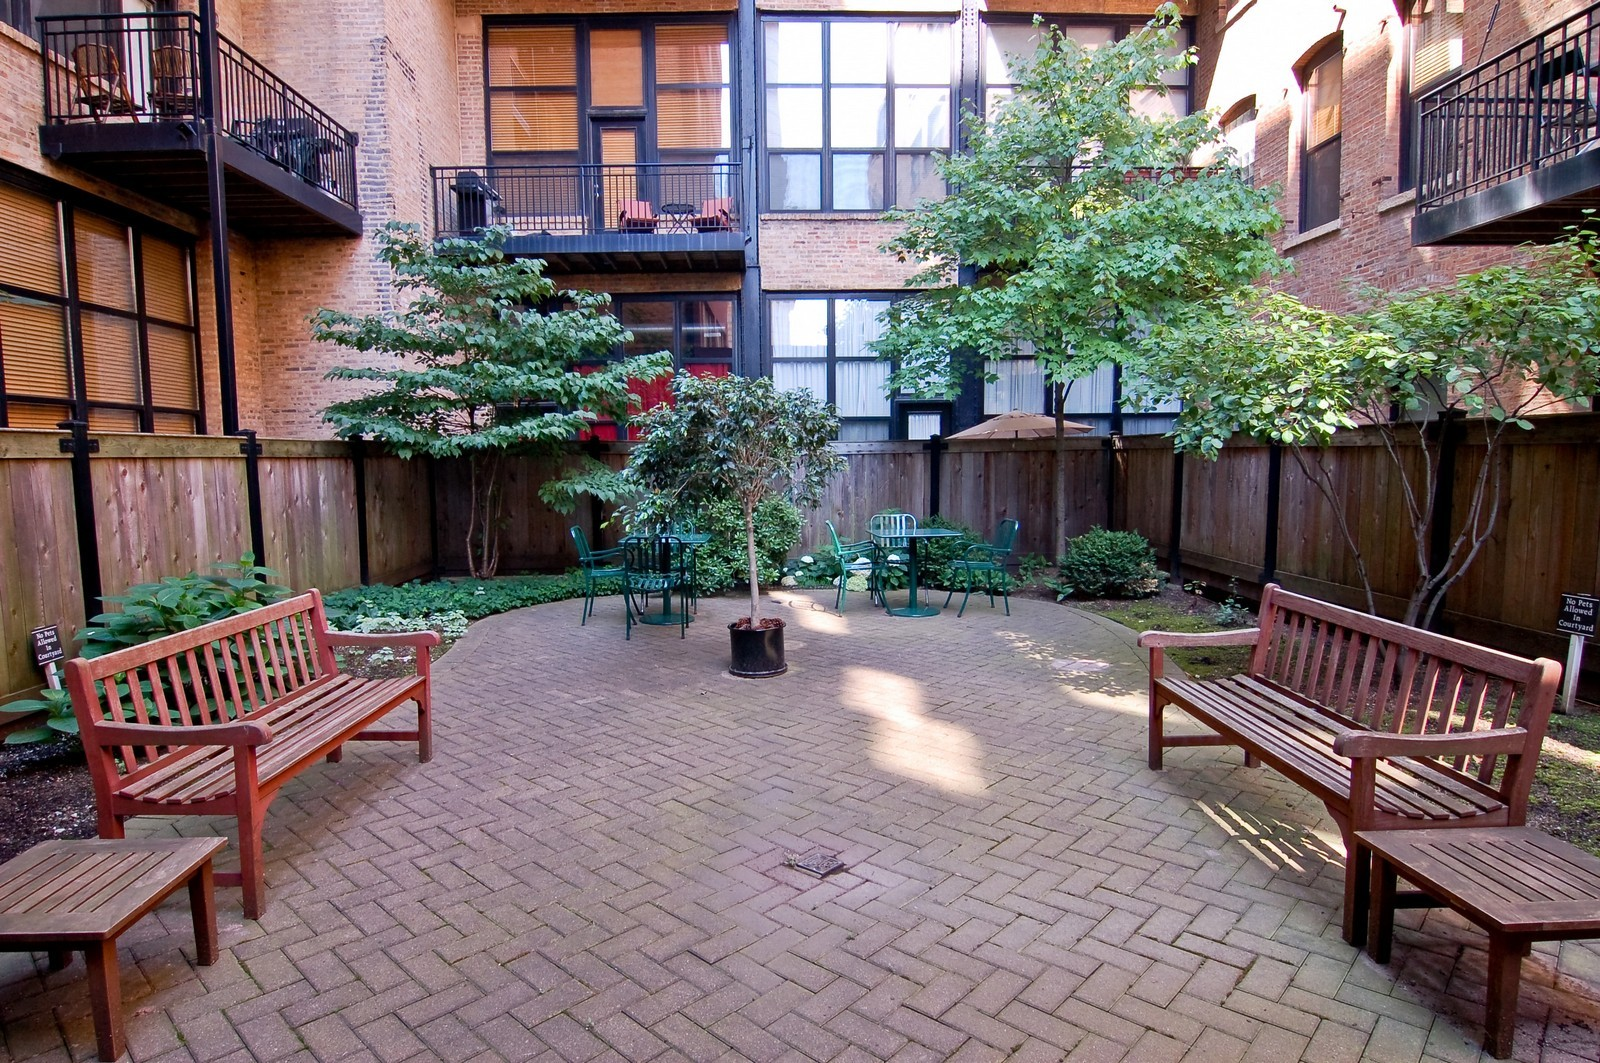 Real Estate Photography - 226 N Clinton, Apt 427, Chicago, IL, 60661 - Courtyard